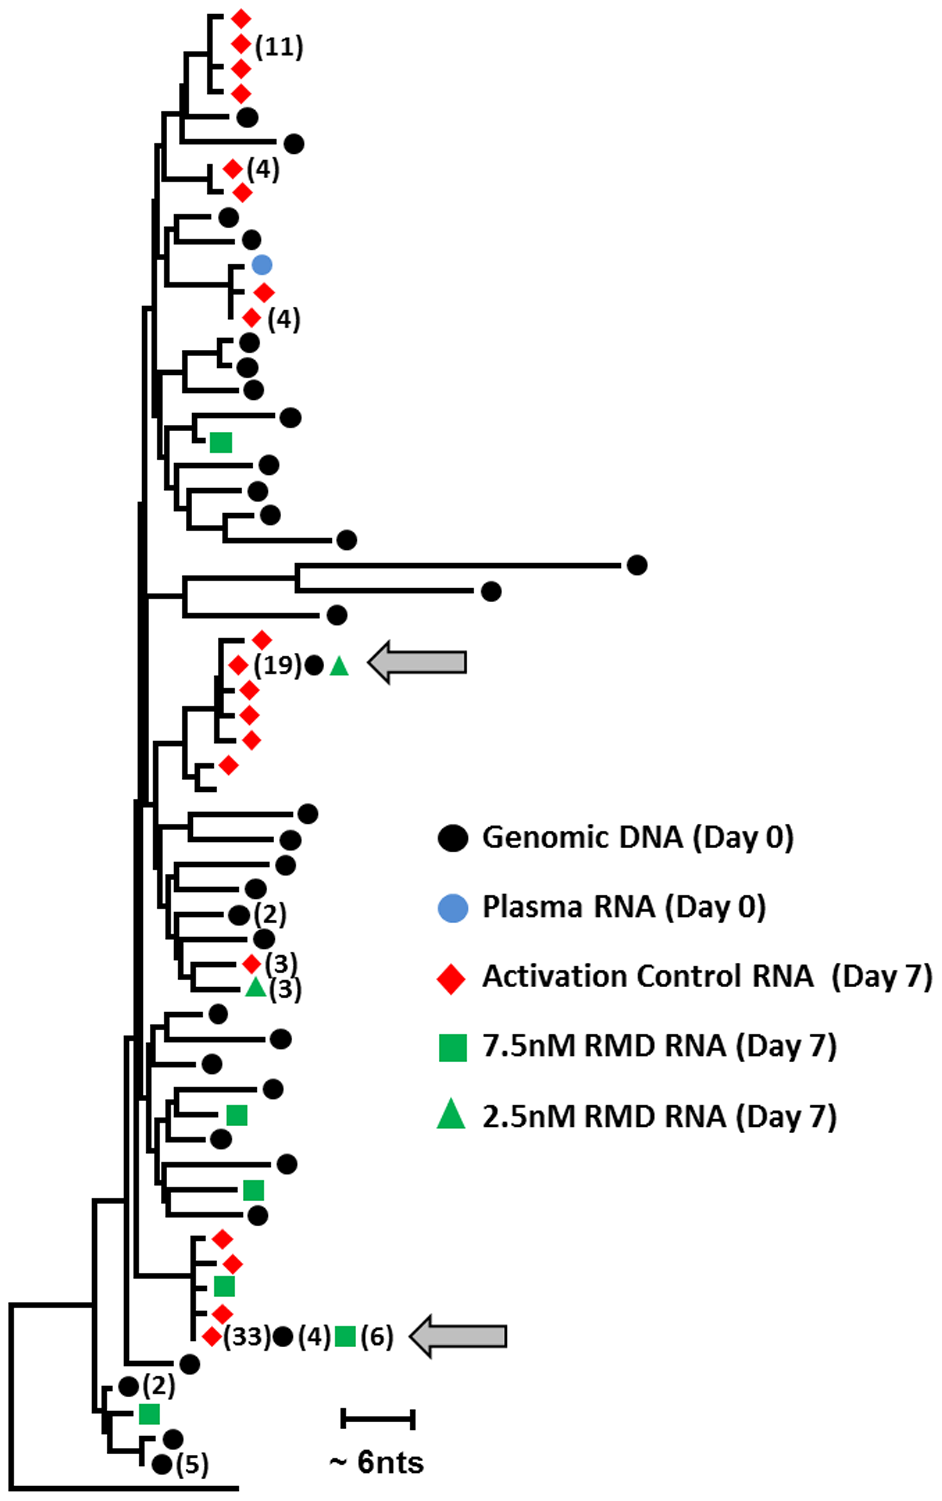 Phylogenetic analysis of HIV sequences expressed ex vivo following the latency reversal.